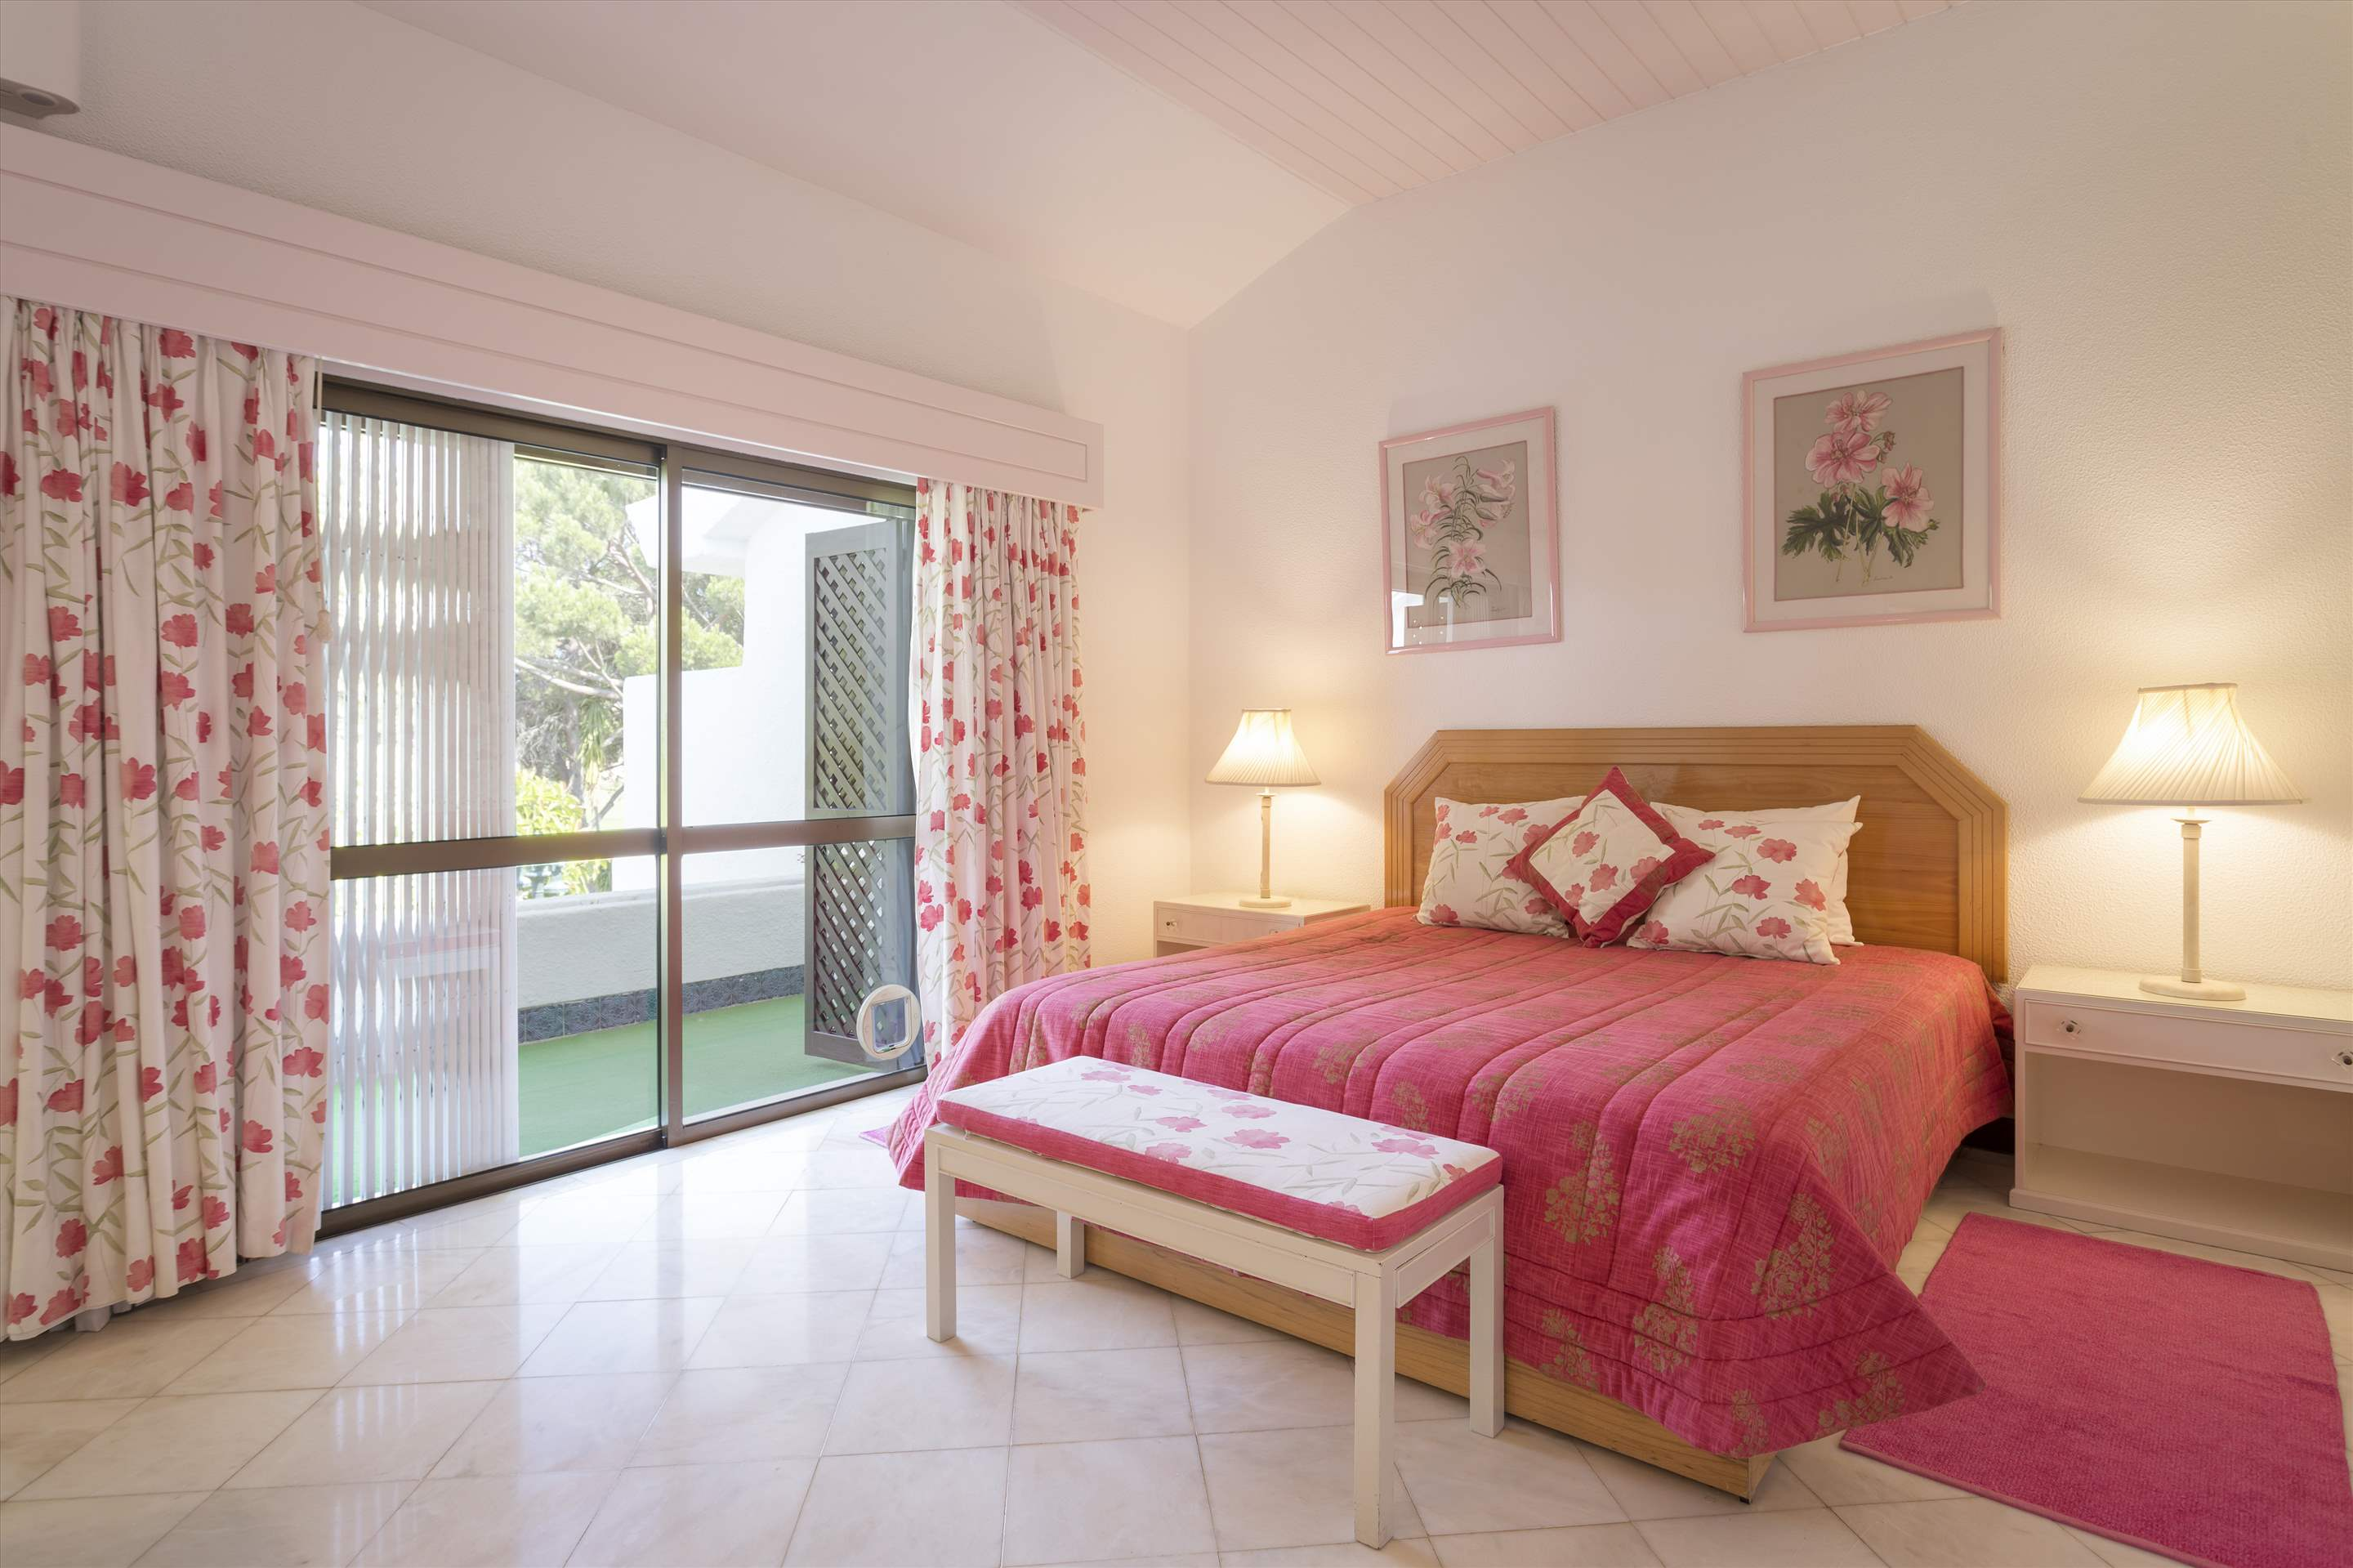 Villa Valerie one, 3 bedroom villa in Vilamoura Area, Algarve Photo #11